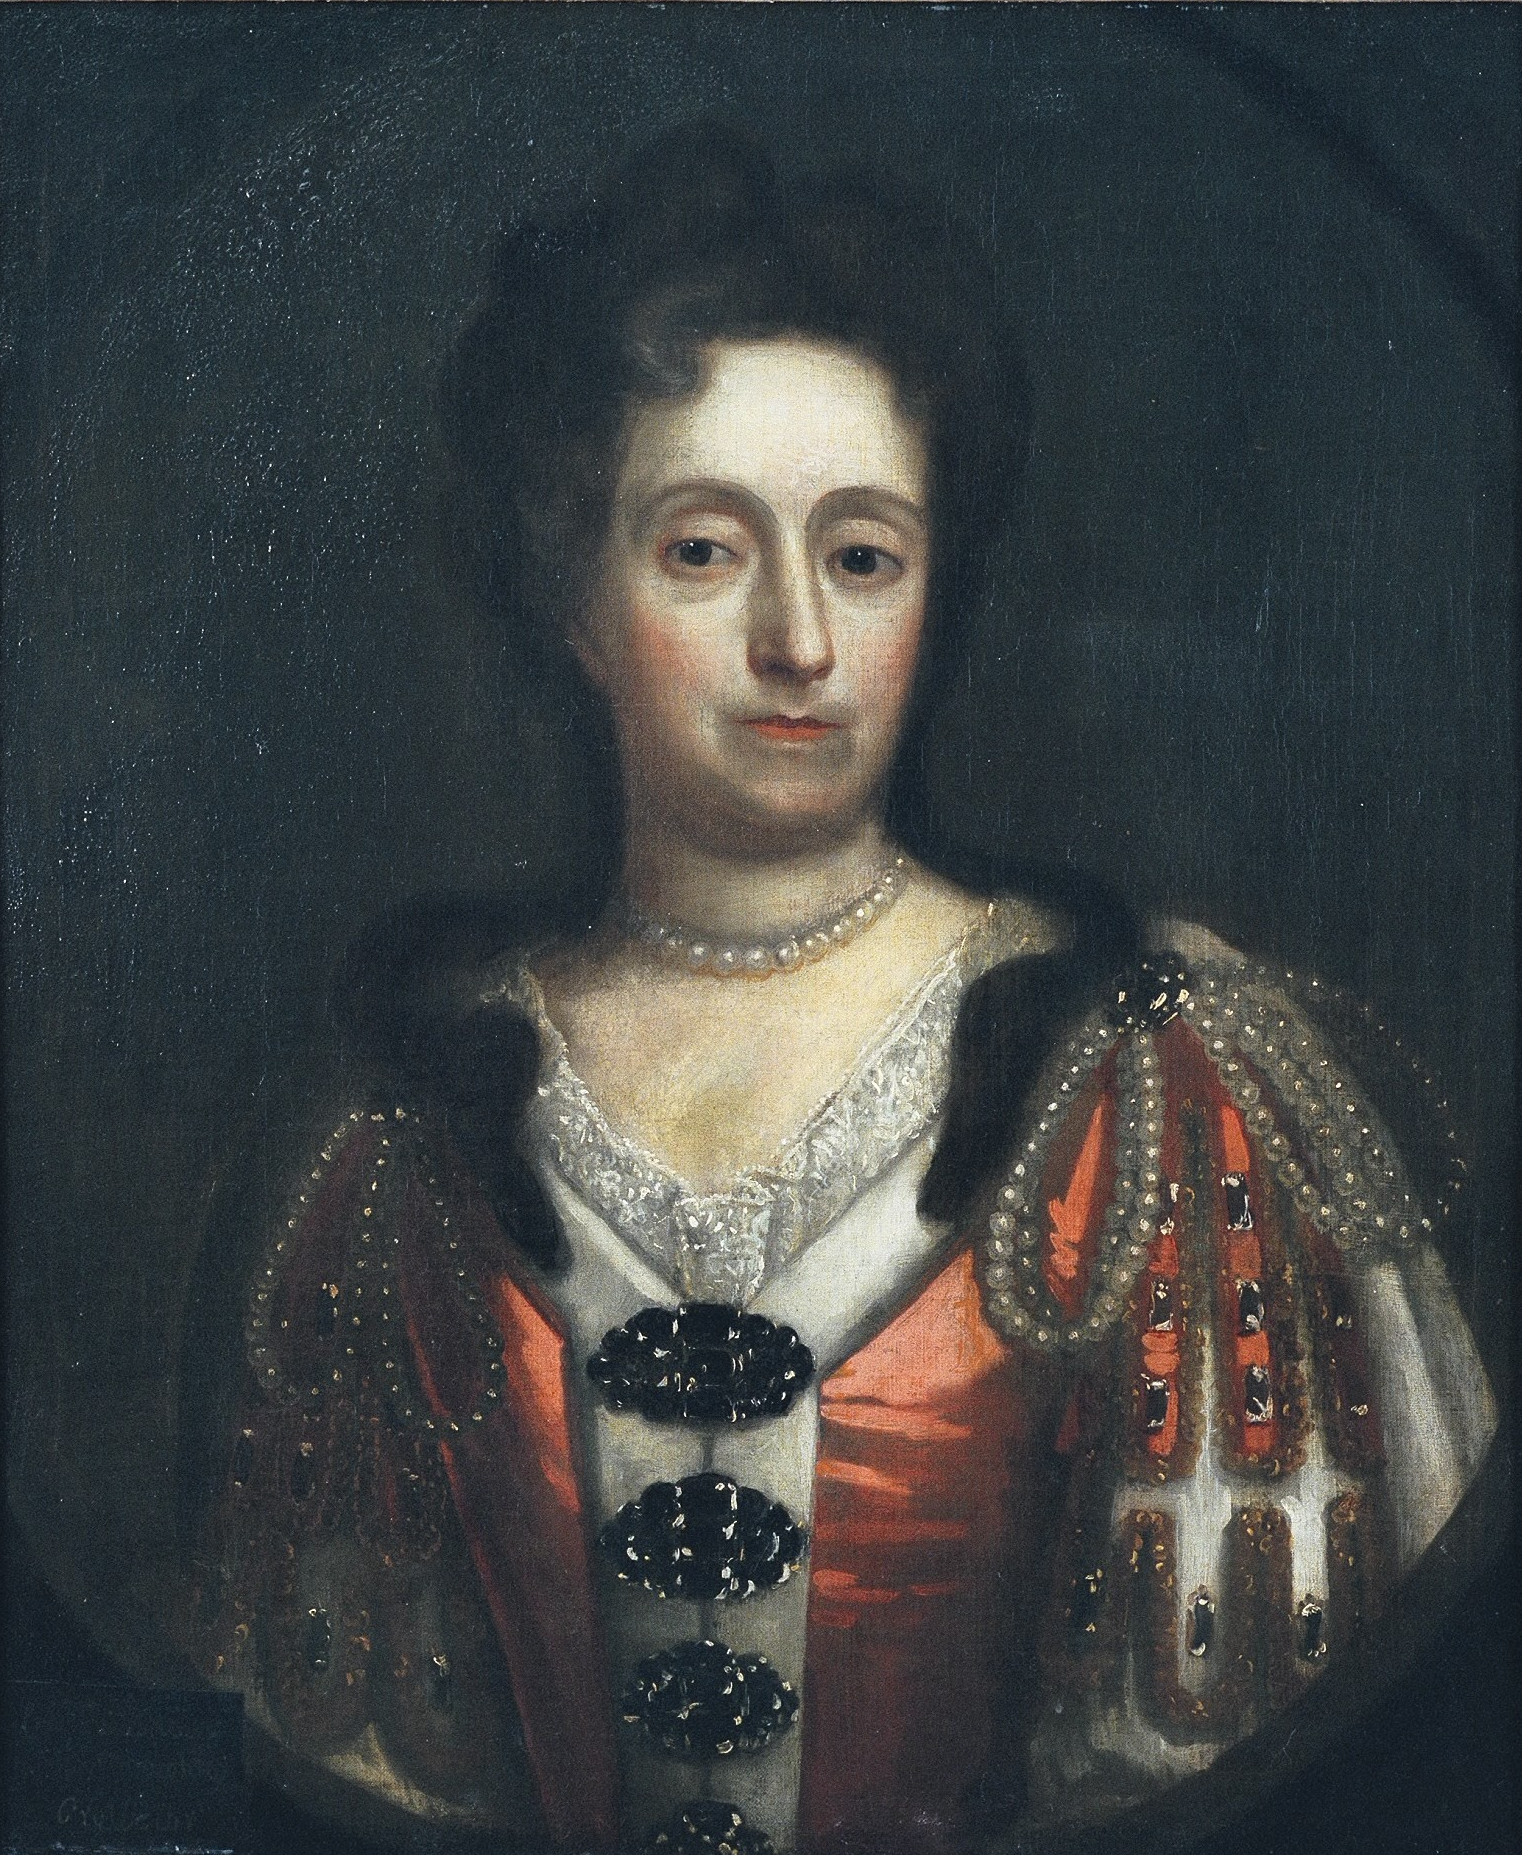 Portrait of Mary, Lady Fauconberg, (Cromwell), circle of Thomas Murray, c.1670, Oil on Canvas. thumbnail